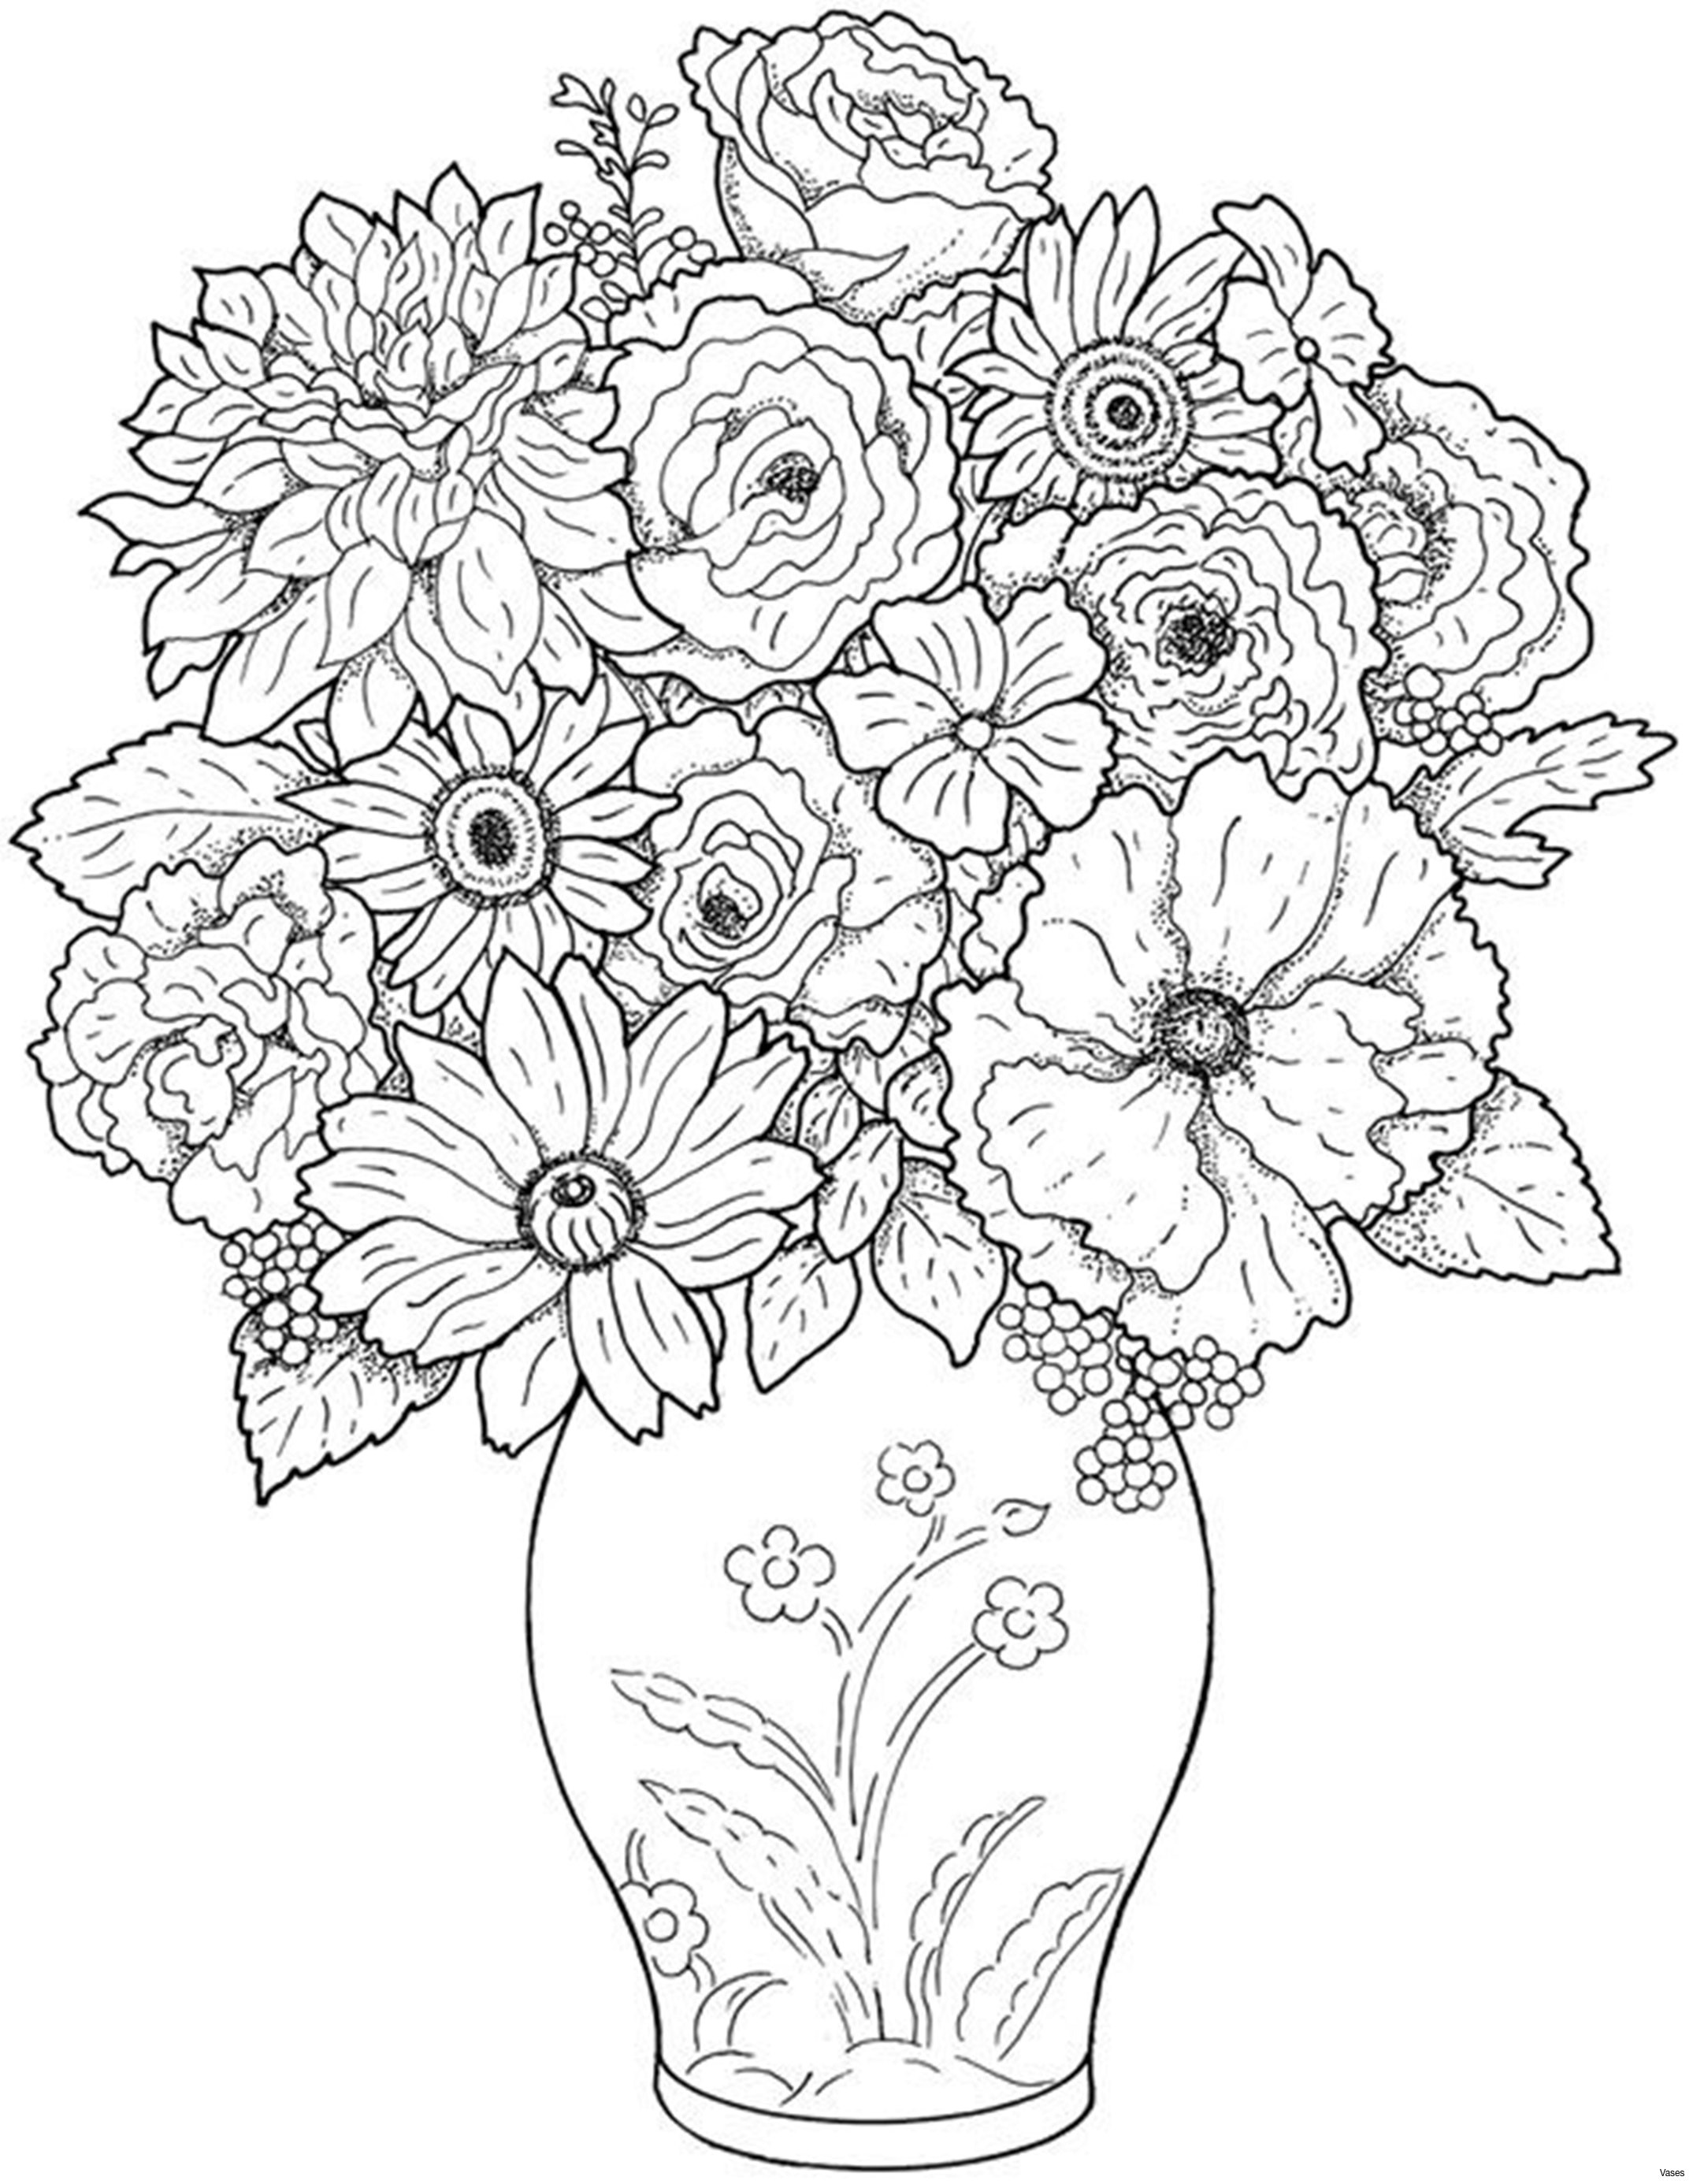 how to make a flower vase at home of cool vases flower vase coloring page pages flowers in a top i 0d ruva inside cool vases flower vase coloring page pages flowers in a top i 0d